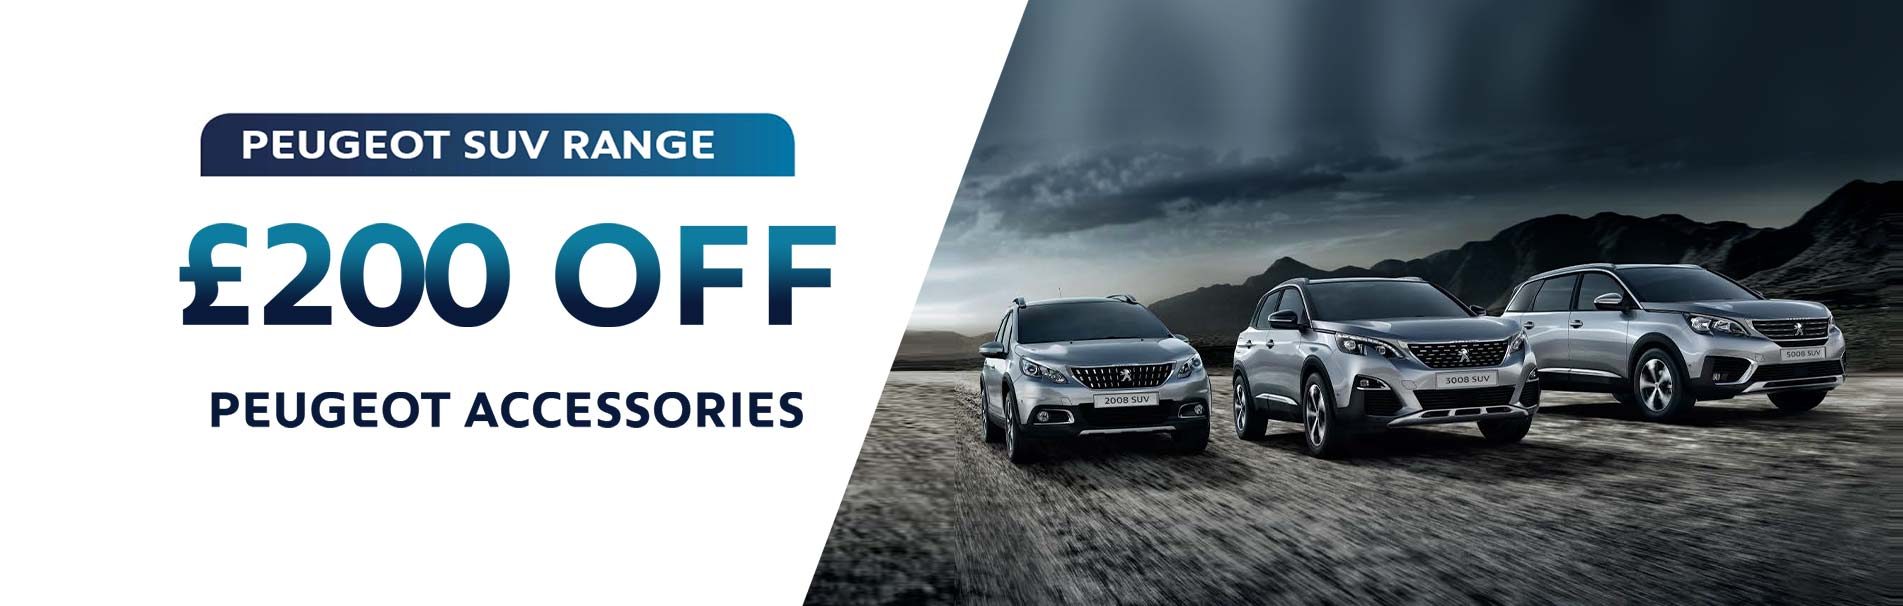 peugeot-suv-range-200-pound-accessories-offer-sli